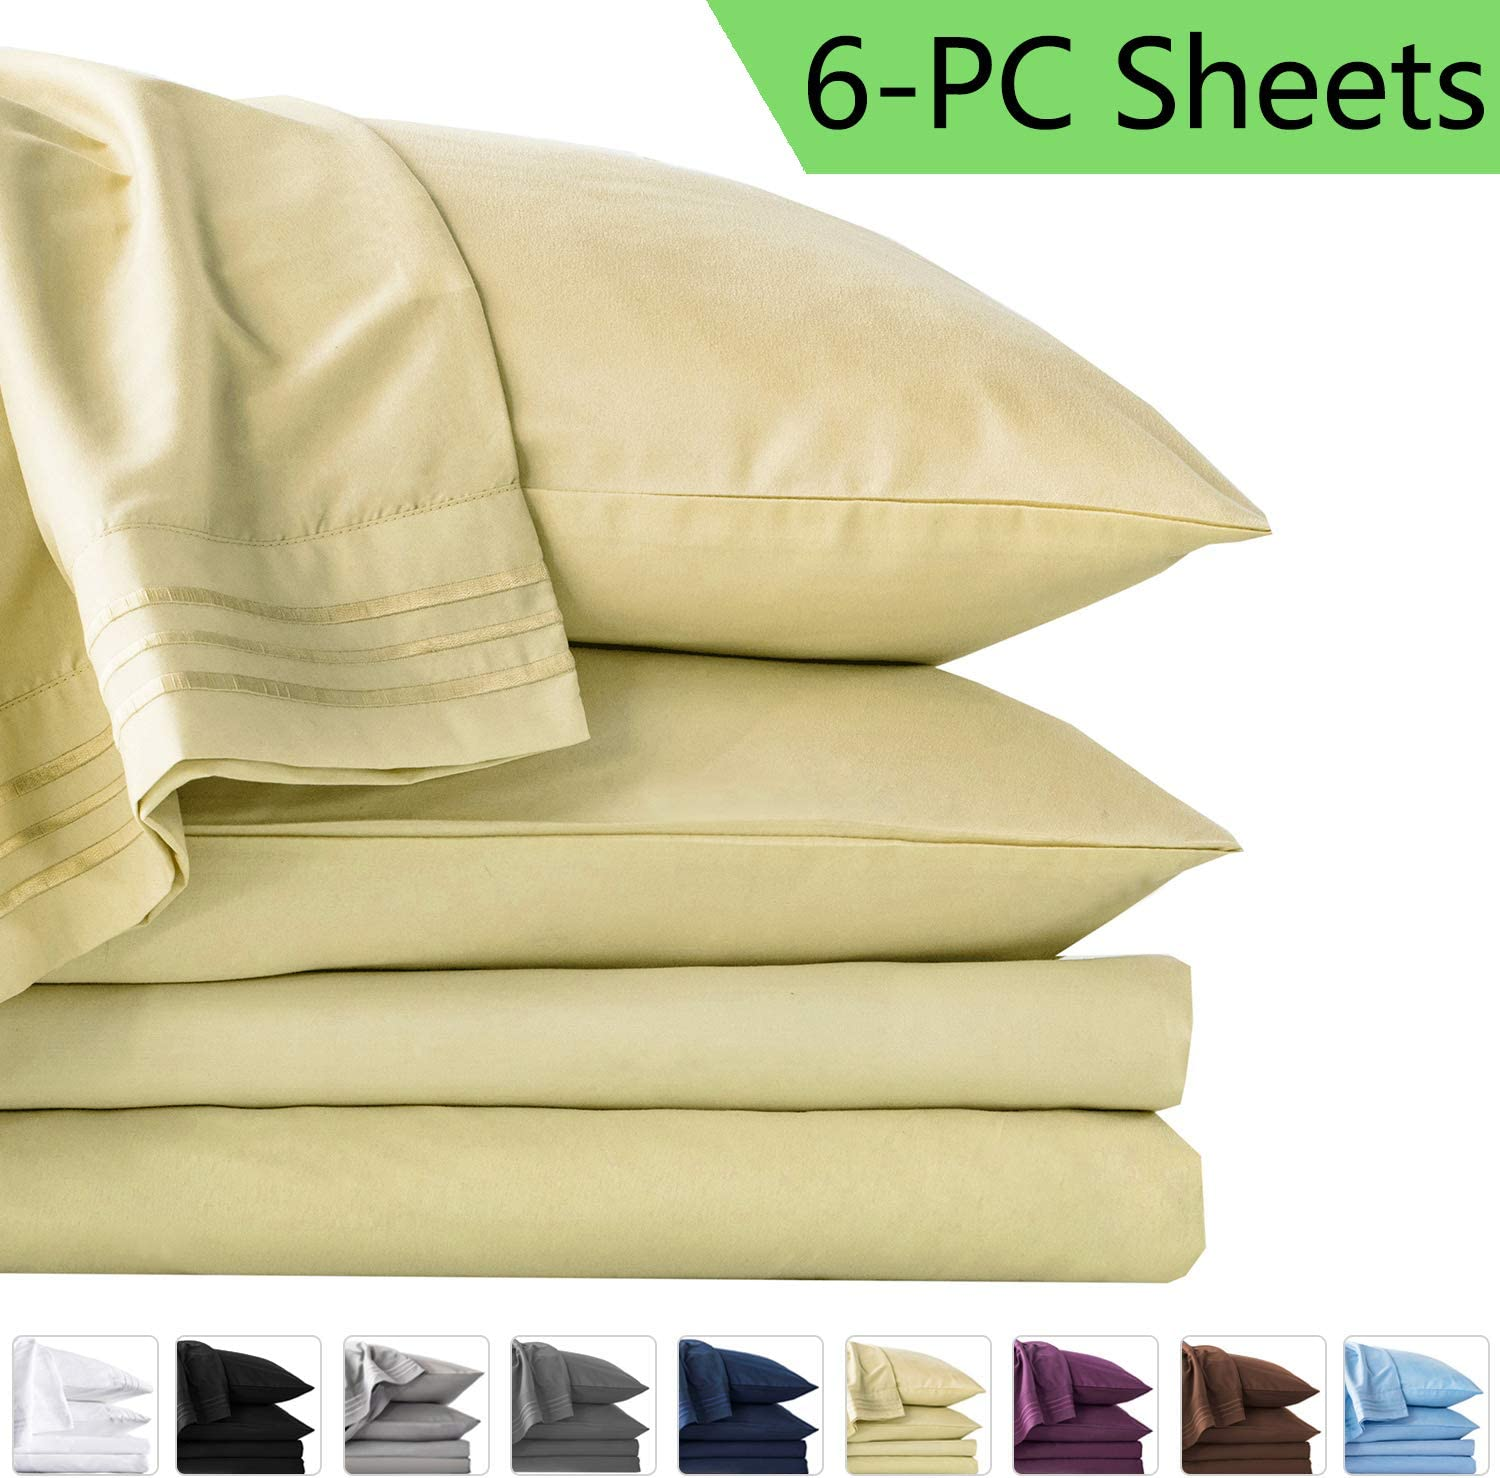 LIANLAM Queen 6 Piece Bed Sheets Set - Super Soft Brushed Microfiber 1800 Thread Count - Breathable Luxury Egyptian Sheets Deep Pocket - Wrinkle and Hypoallergenic(Queen, Ivory)